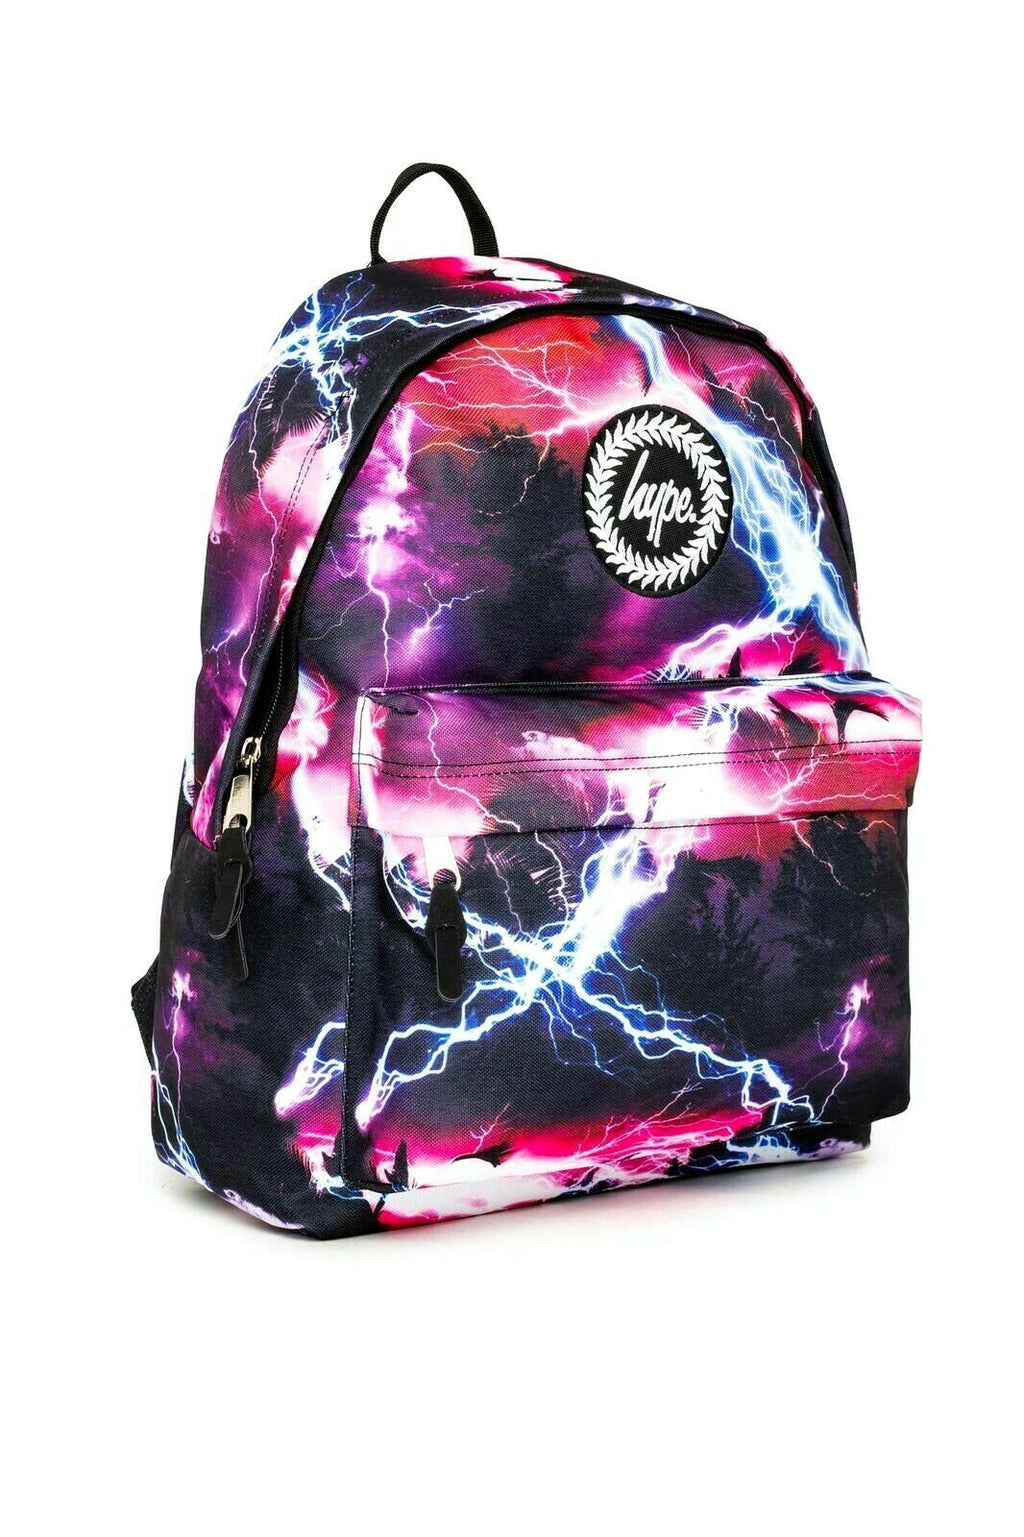 Tropic Storm Backpack